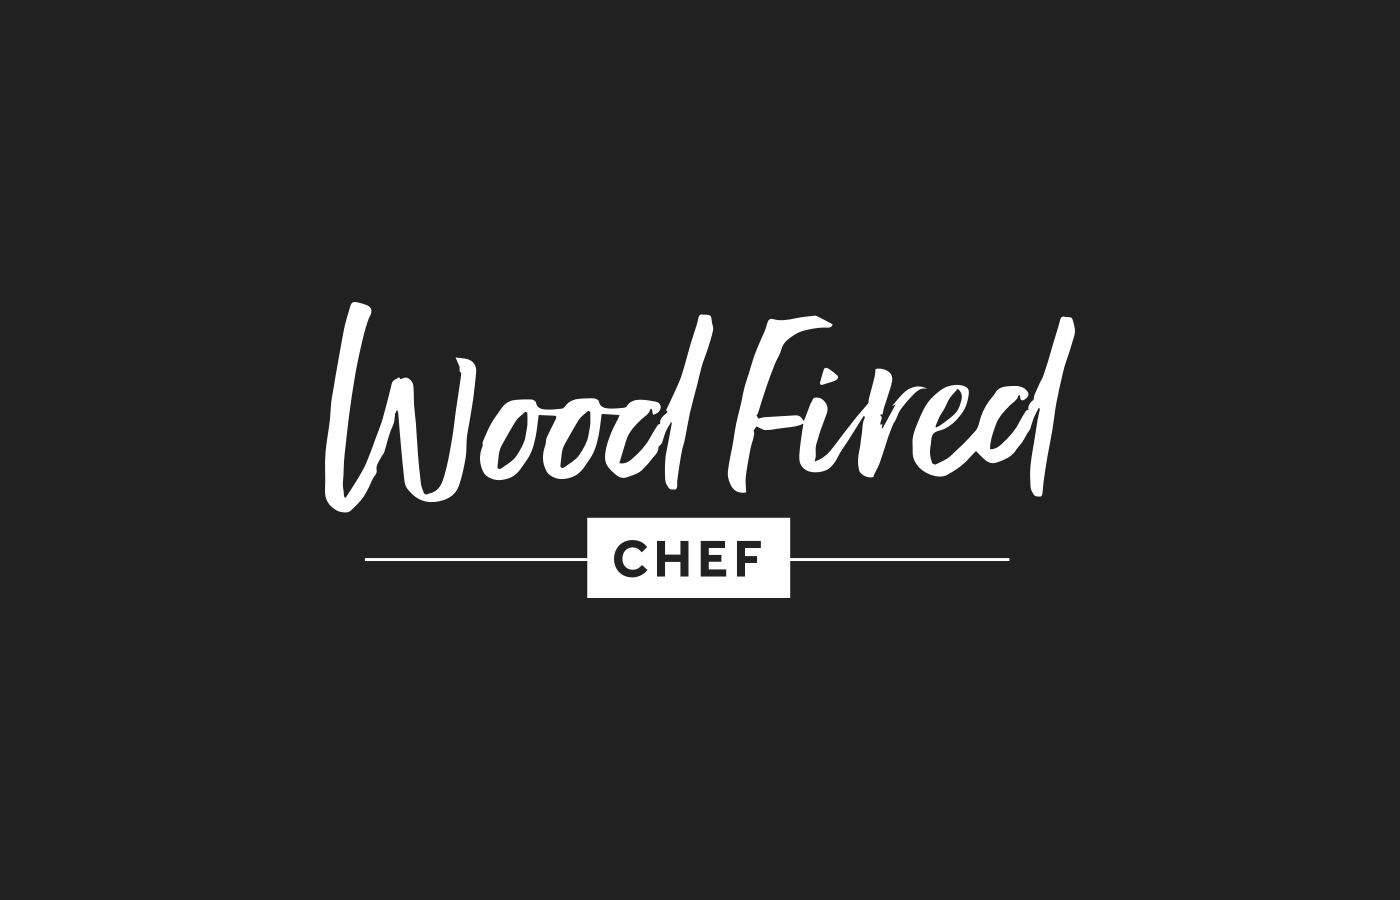 New Brand Identity: Wood Fired Chef